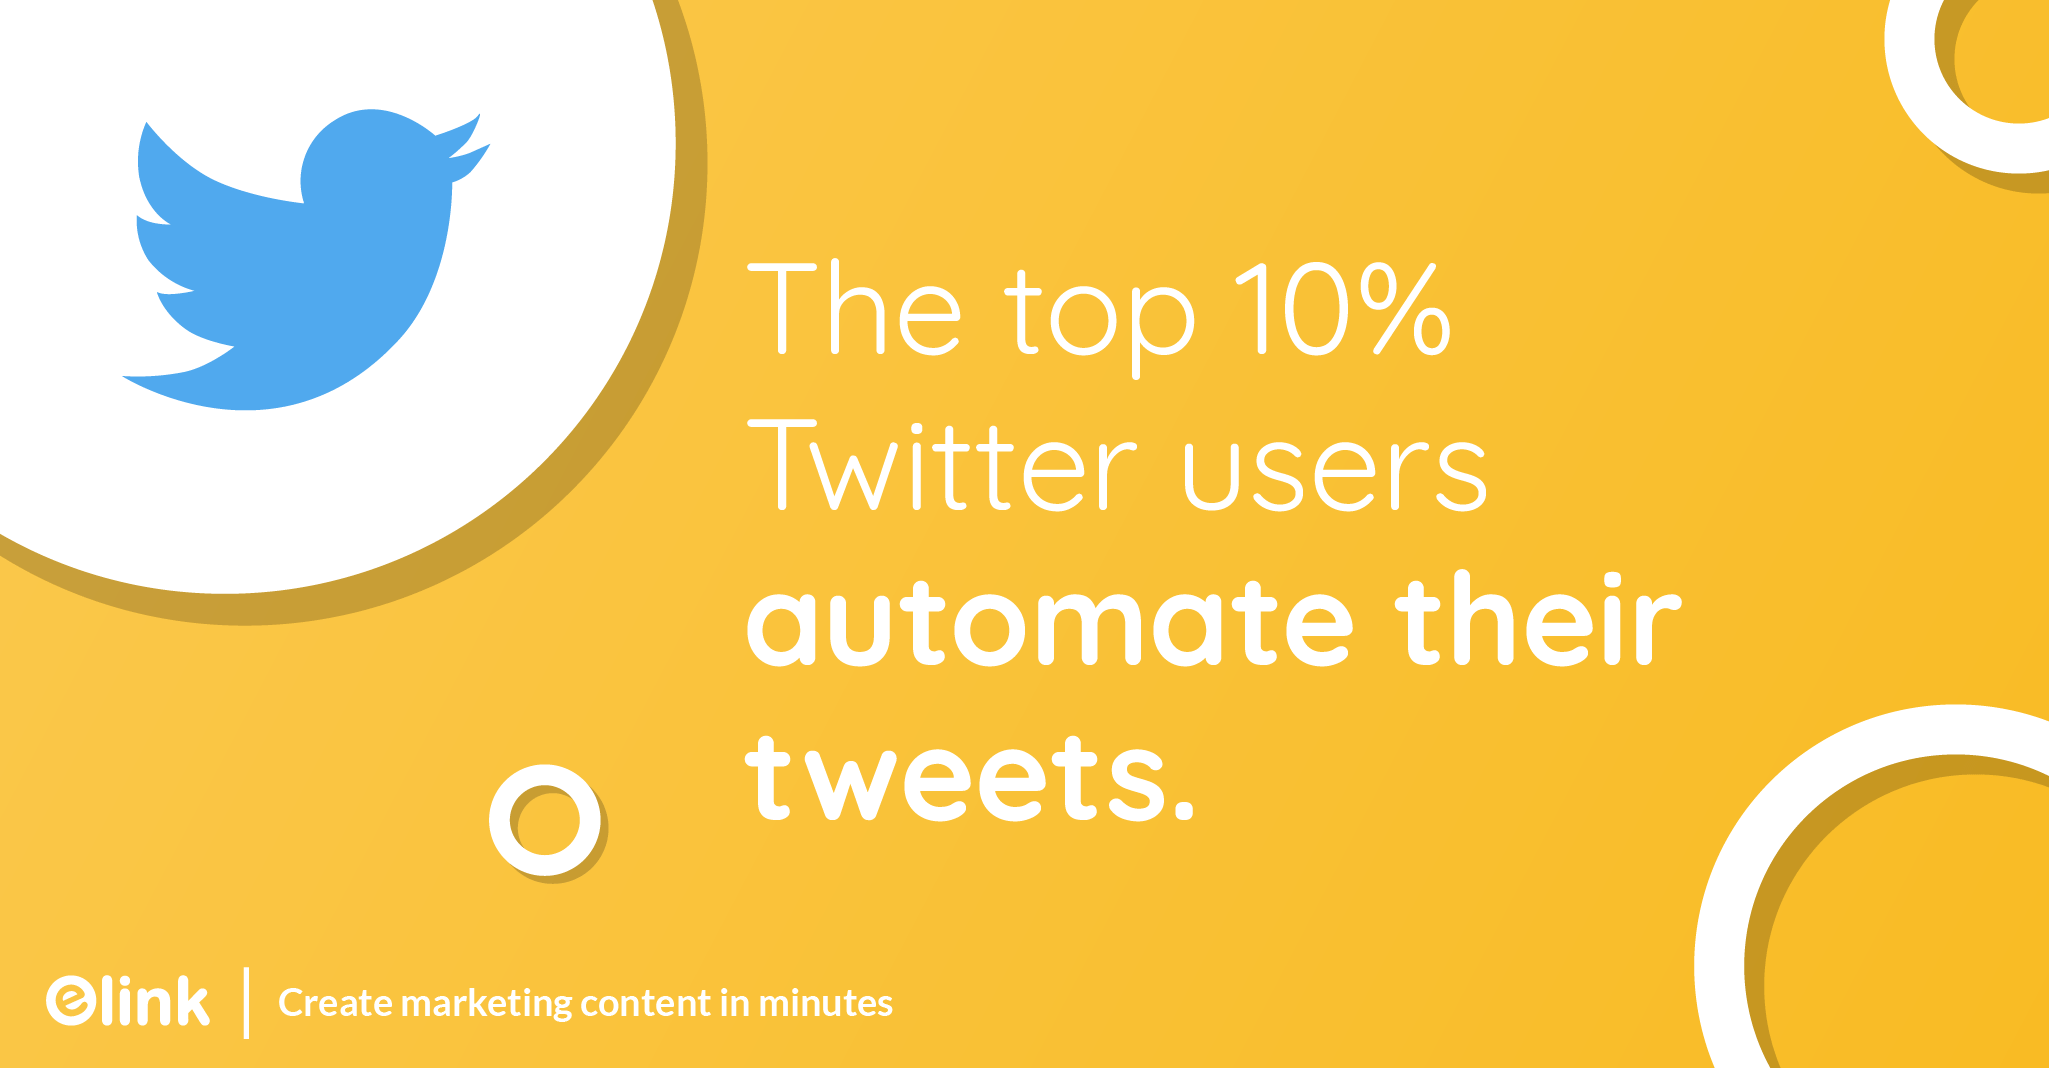 The top 10% twitter users automate their tweets